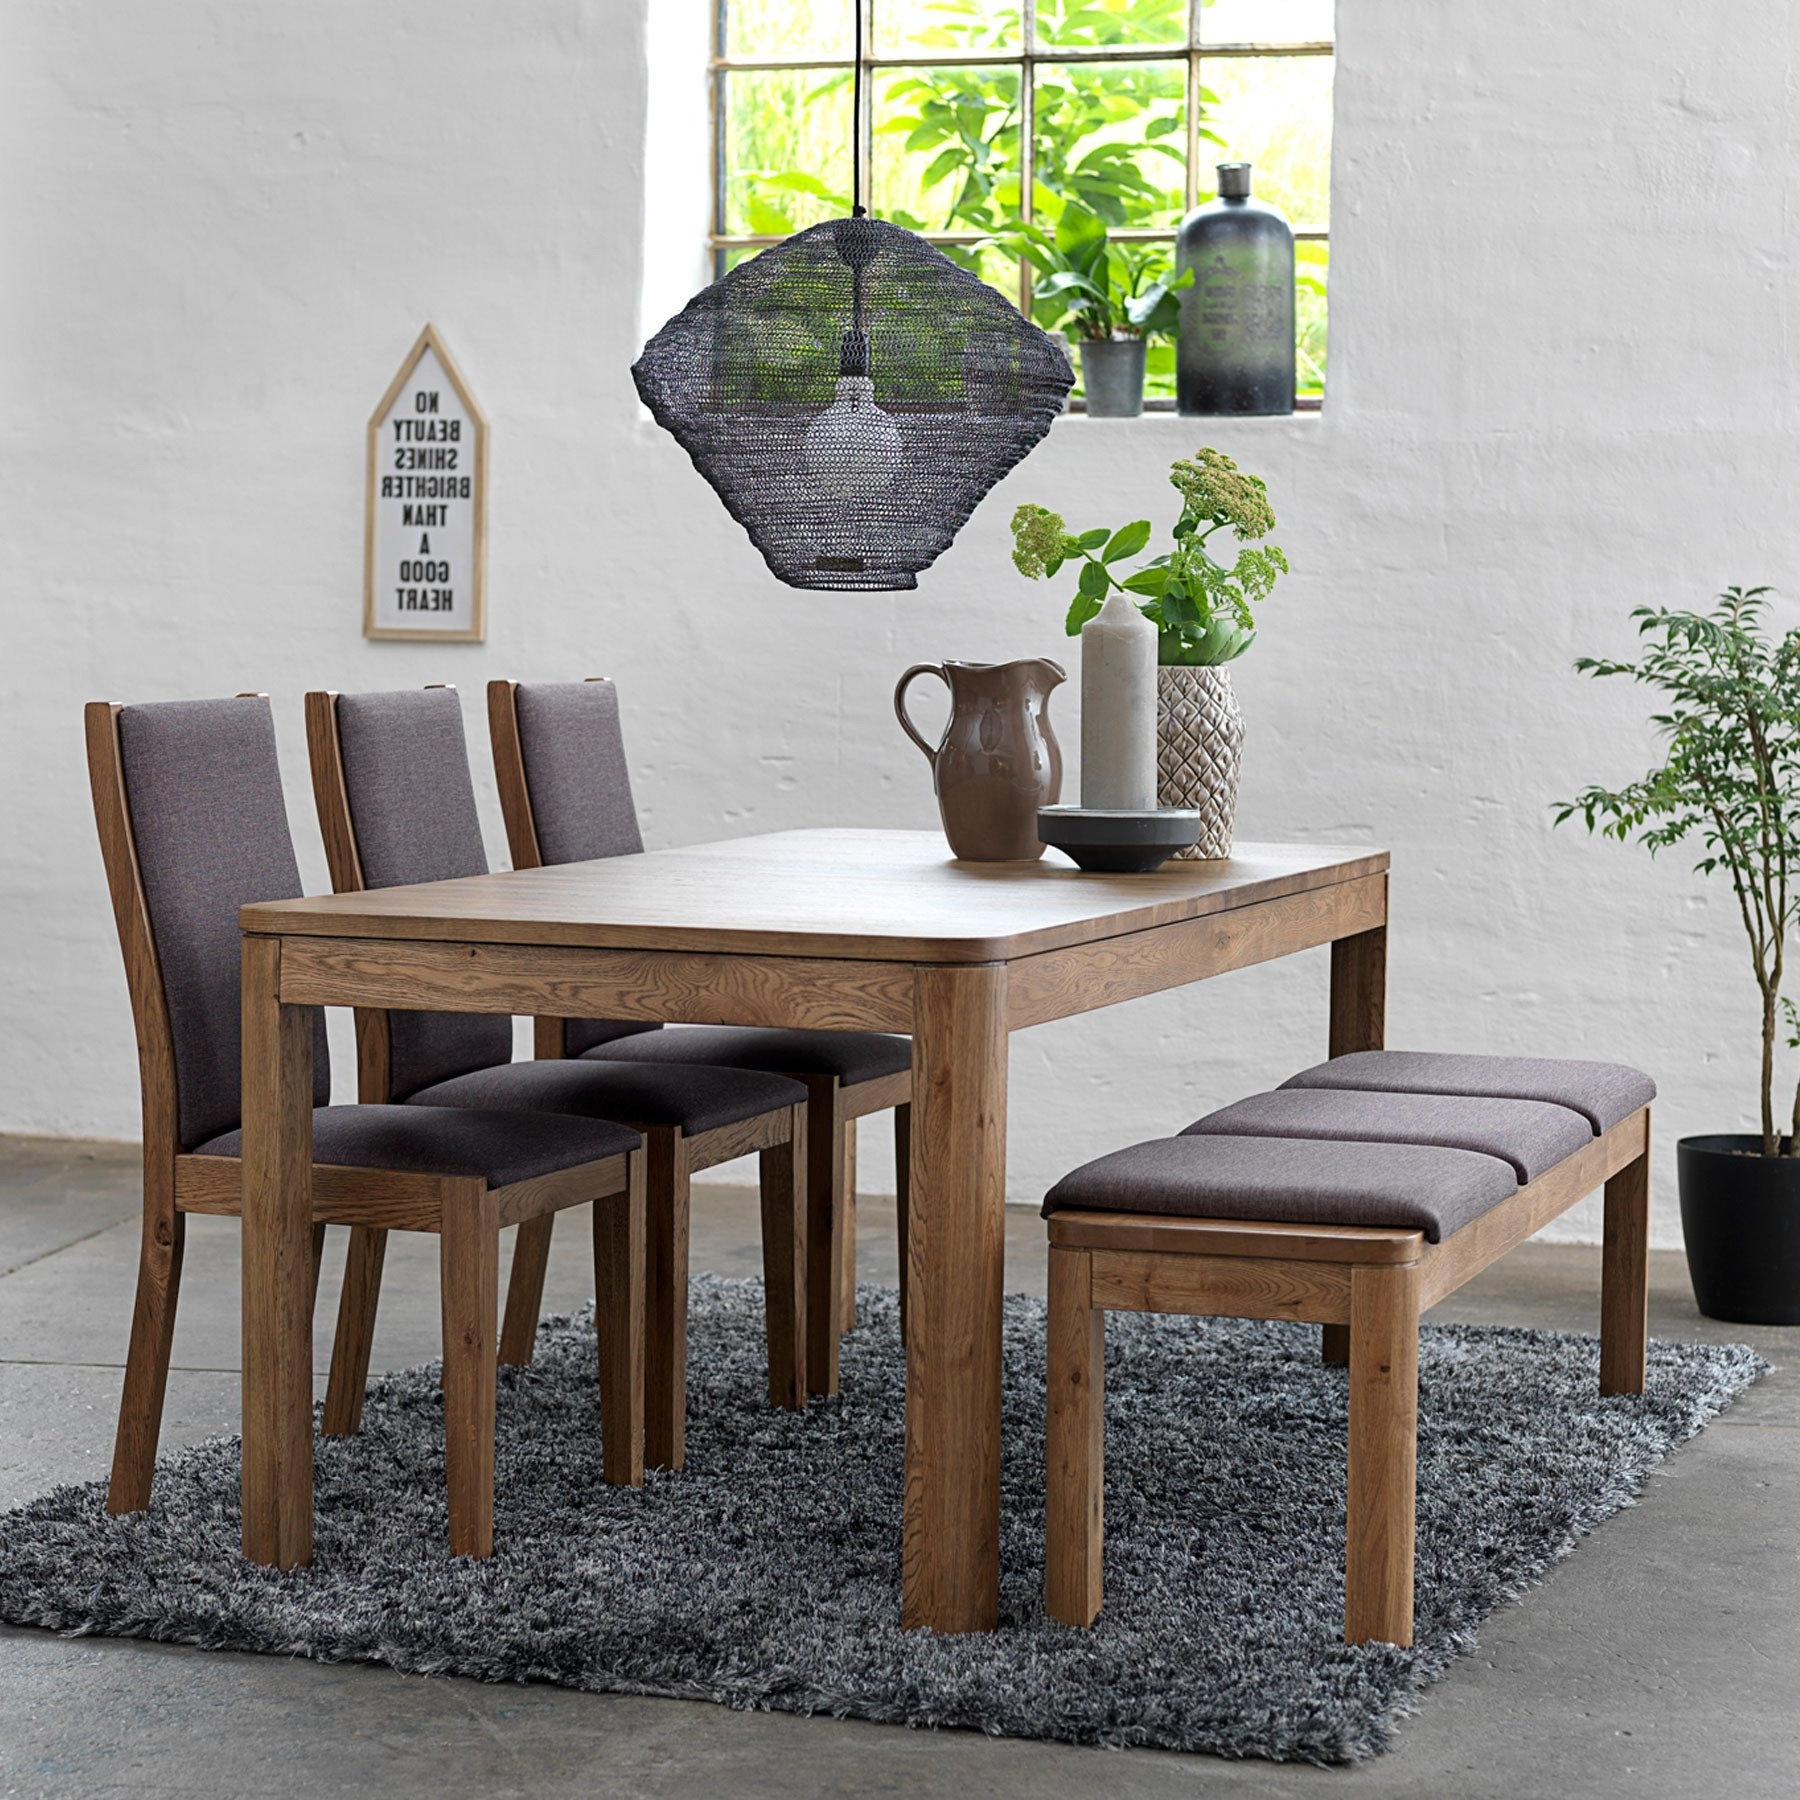 Rustic Country 8 Seating Casual Dining Tables With Well Known 50+ Dining Table With Bench You'll Love In 2020 – Visual Hunt (View 3 of 25)